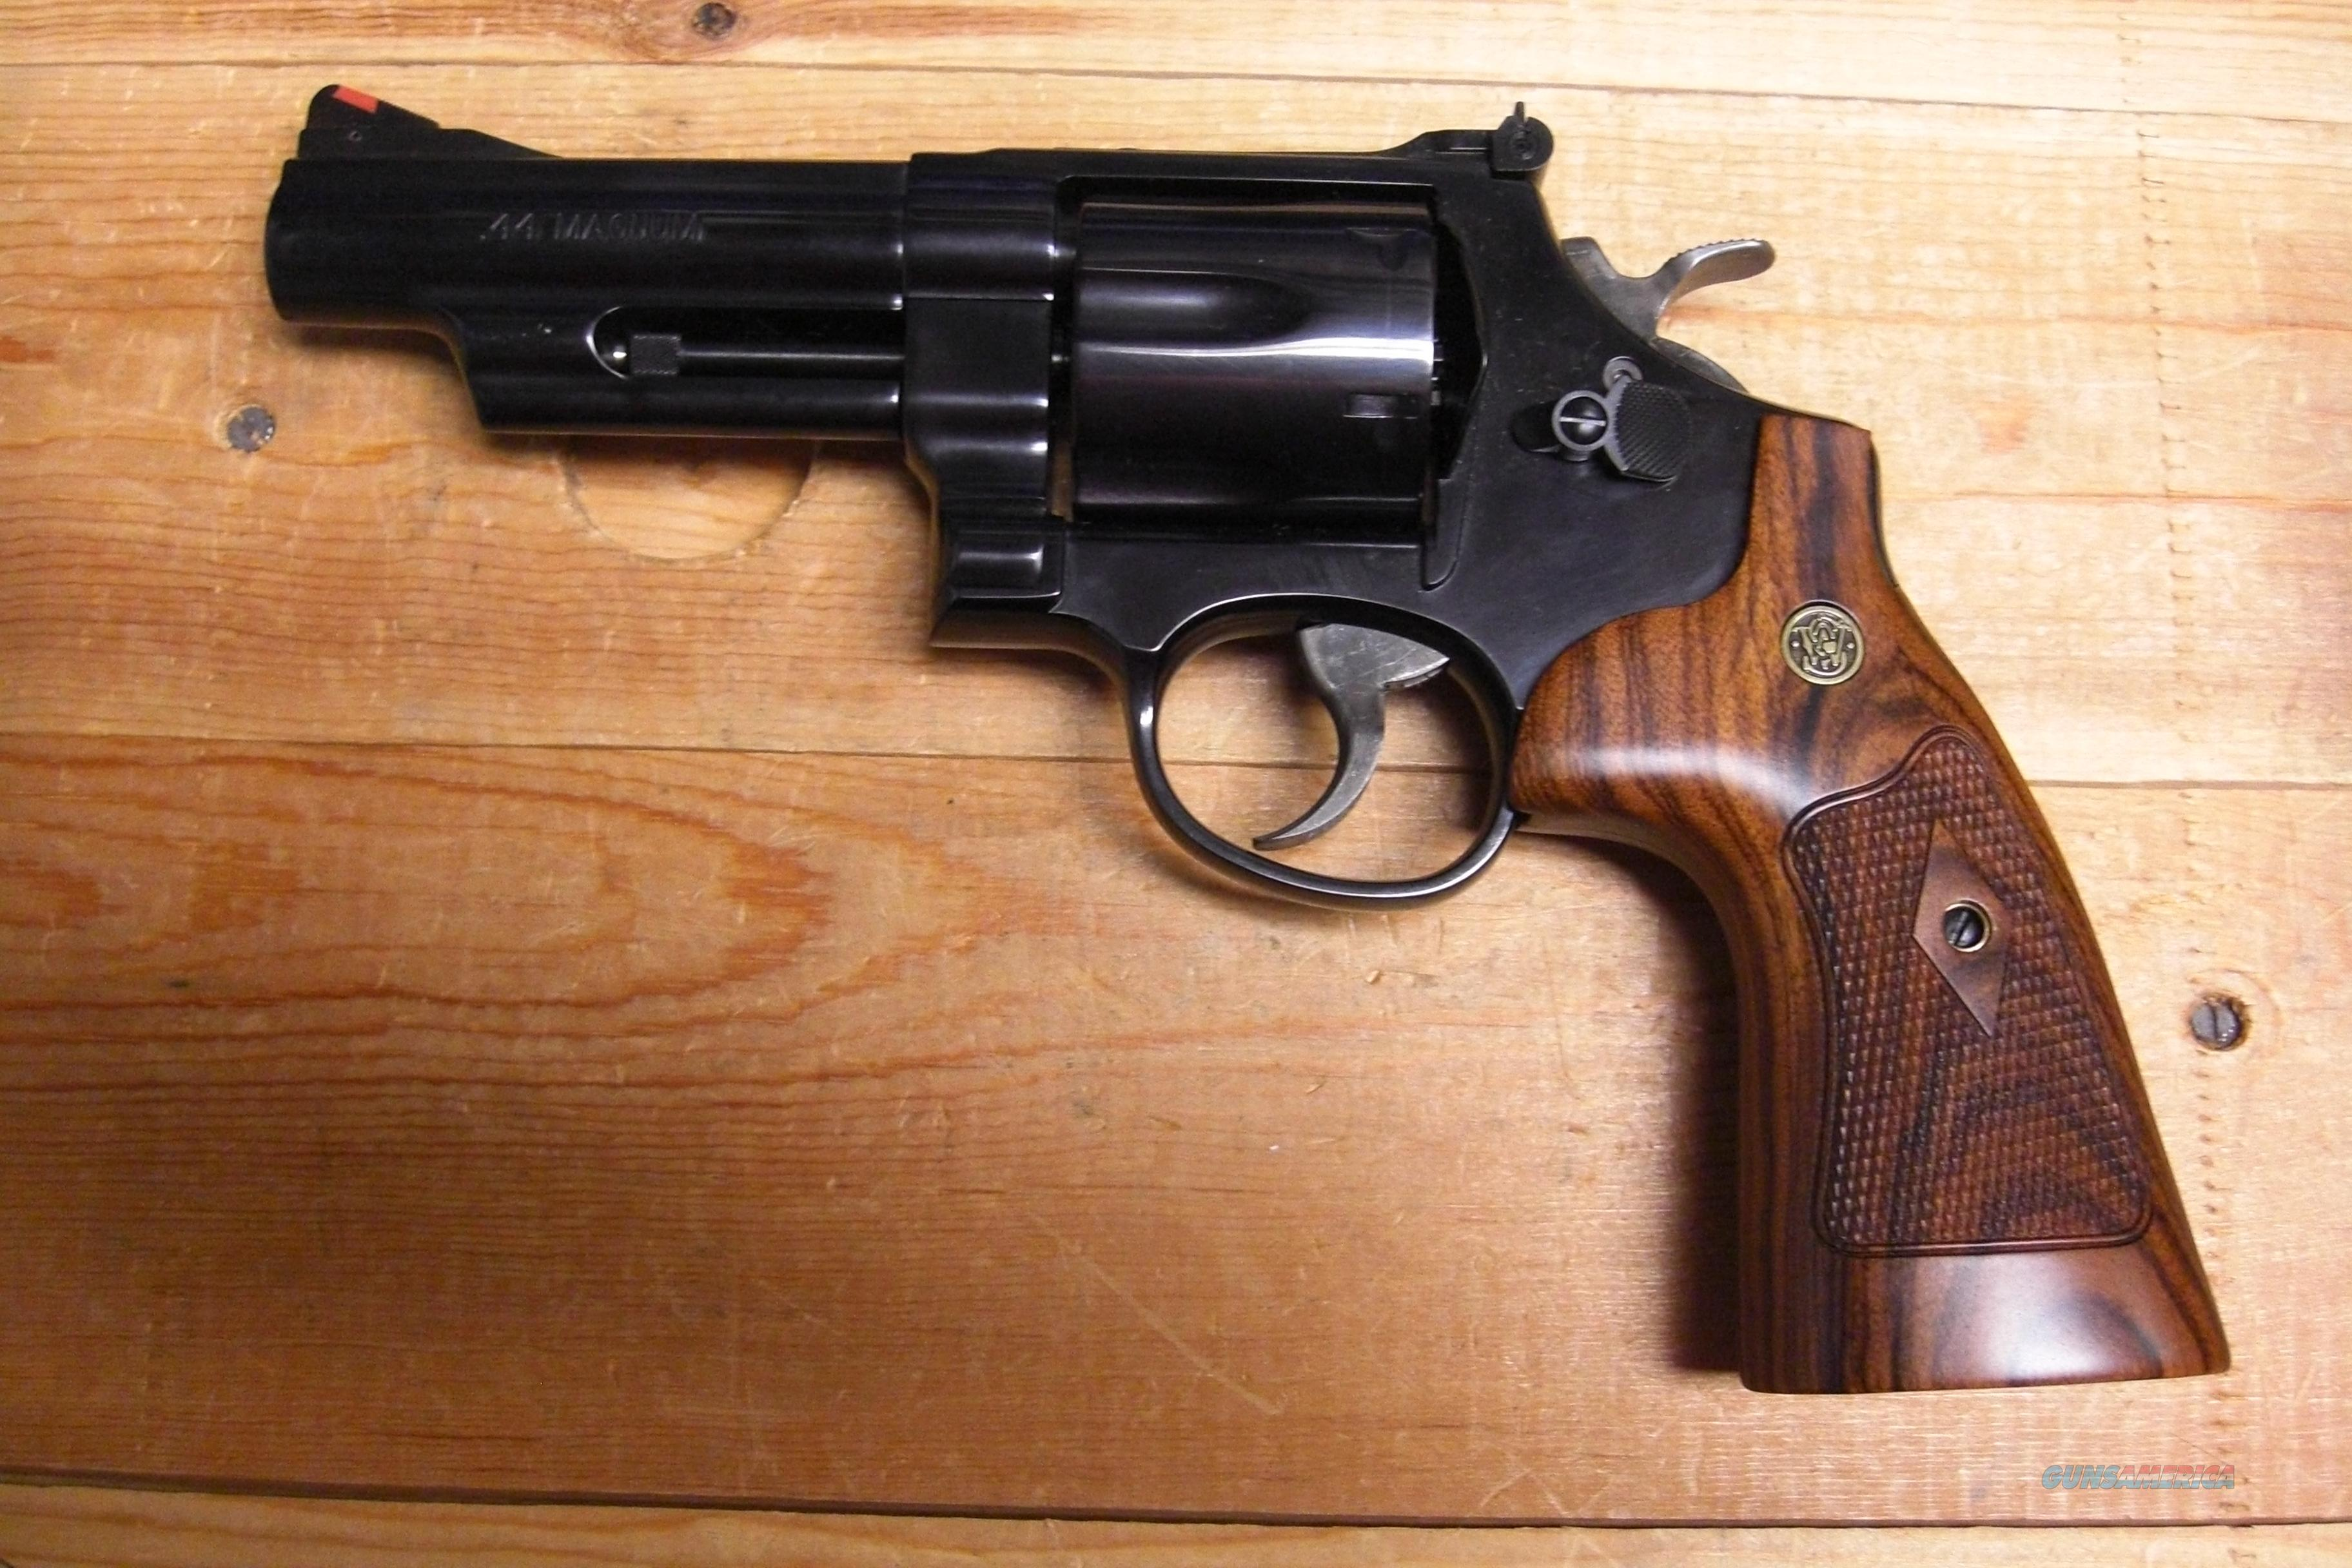 29-10  w/adjustable rear sights  Guns > Pistols > Smith & Wesson Revolvers > Full Frame Revolver